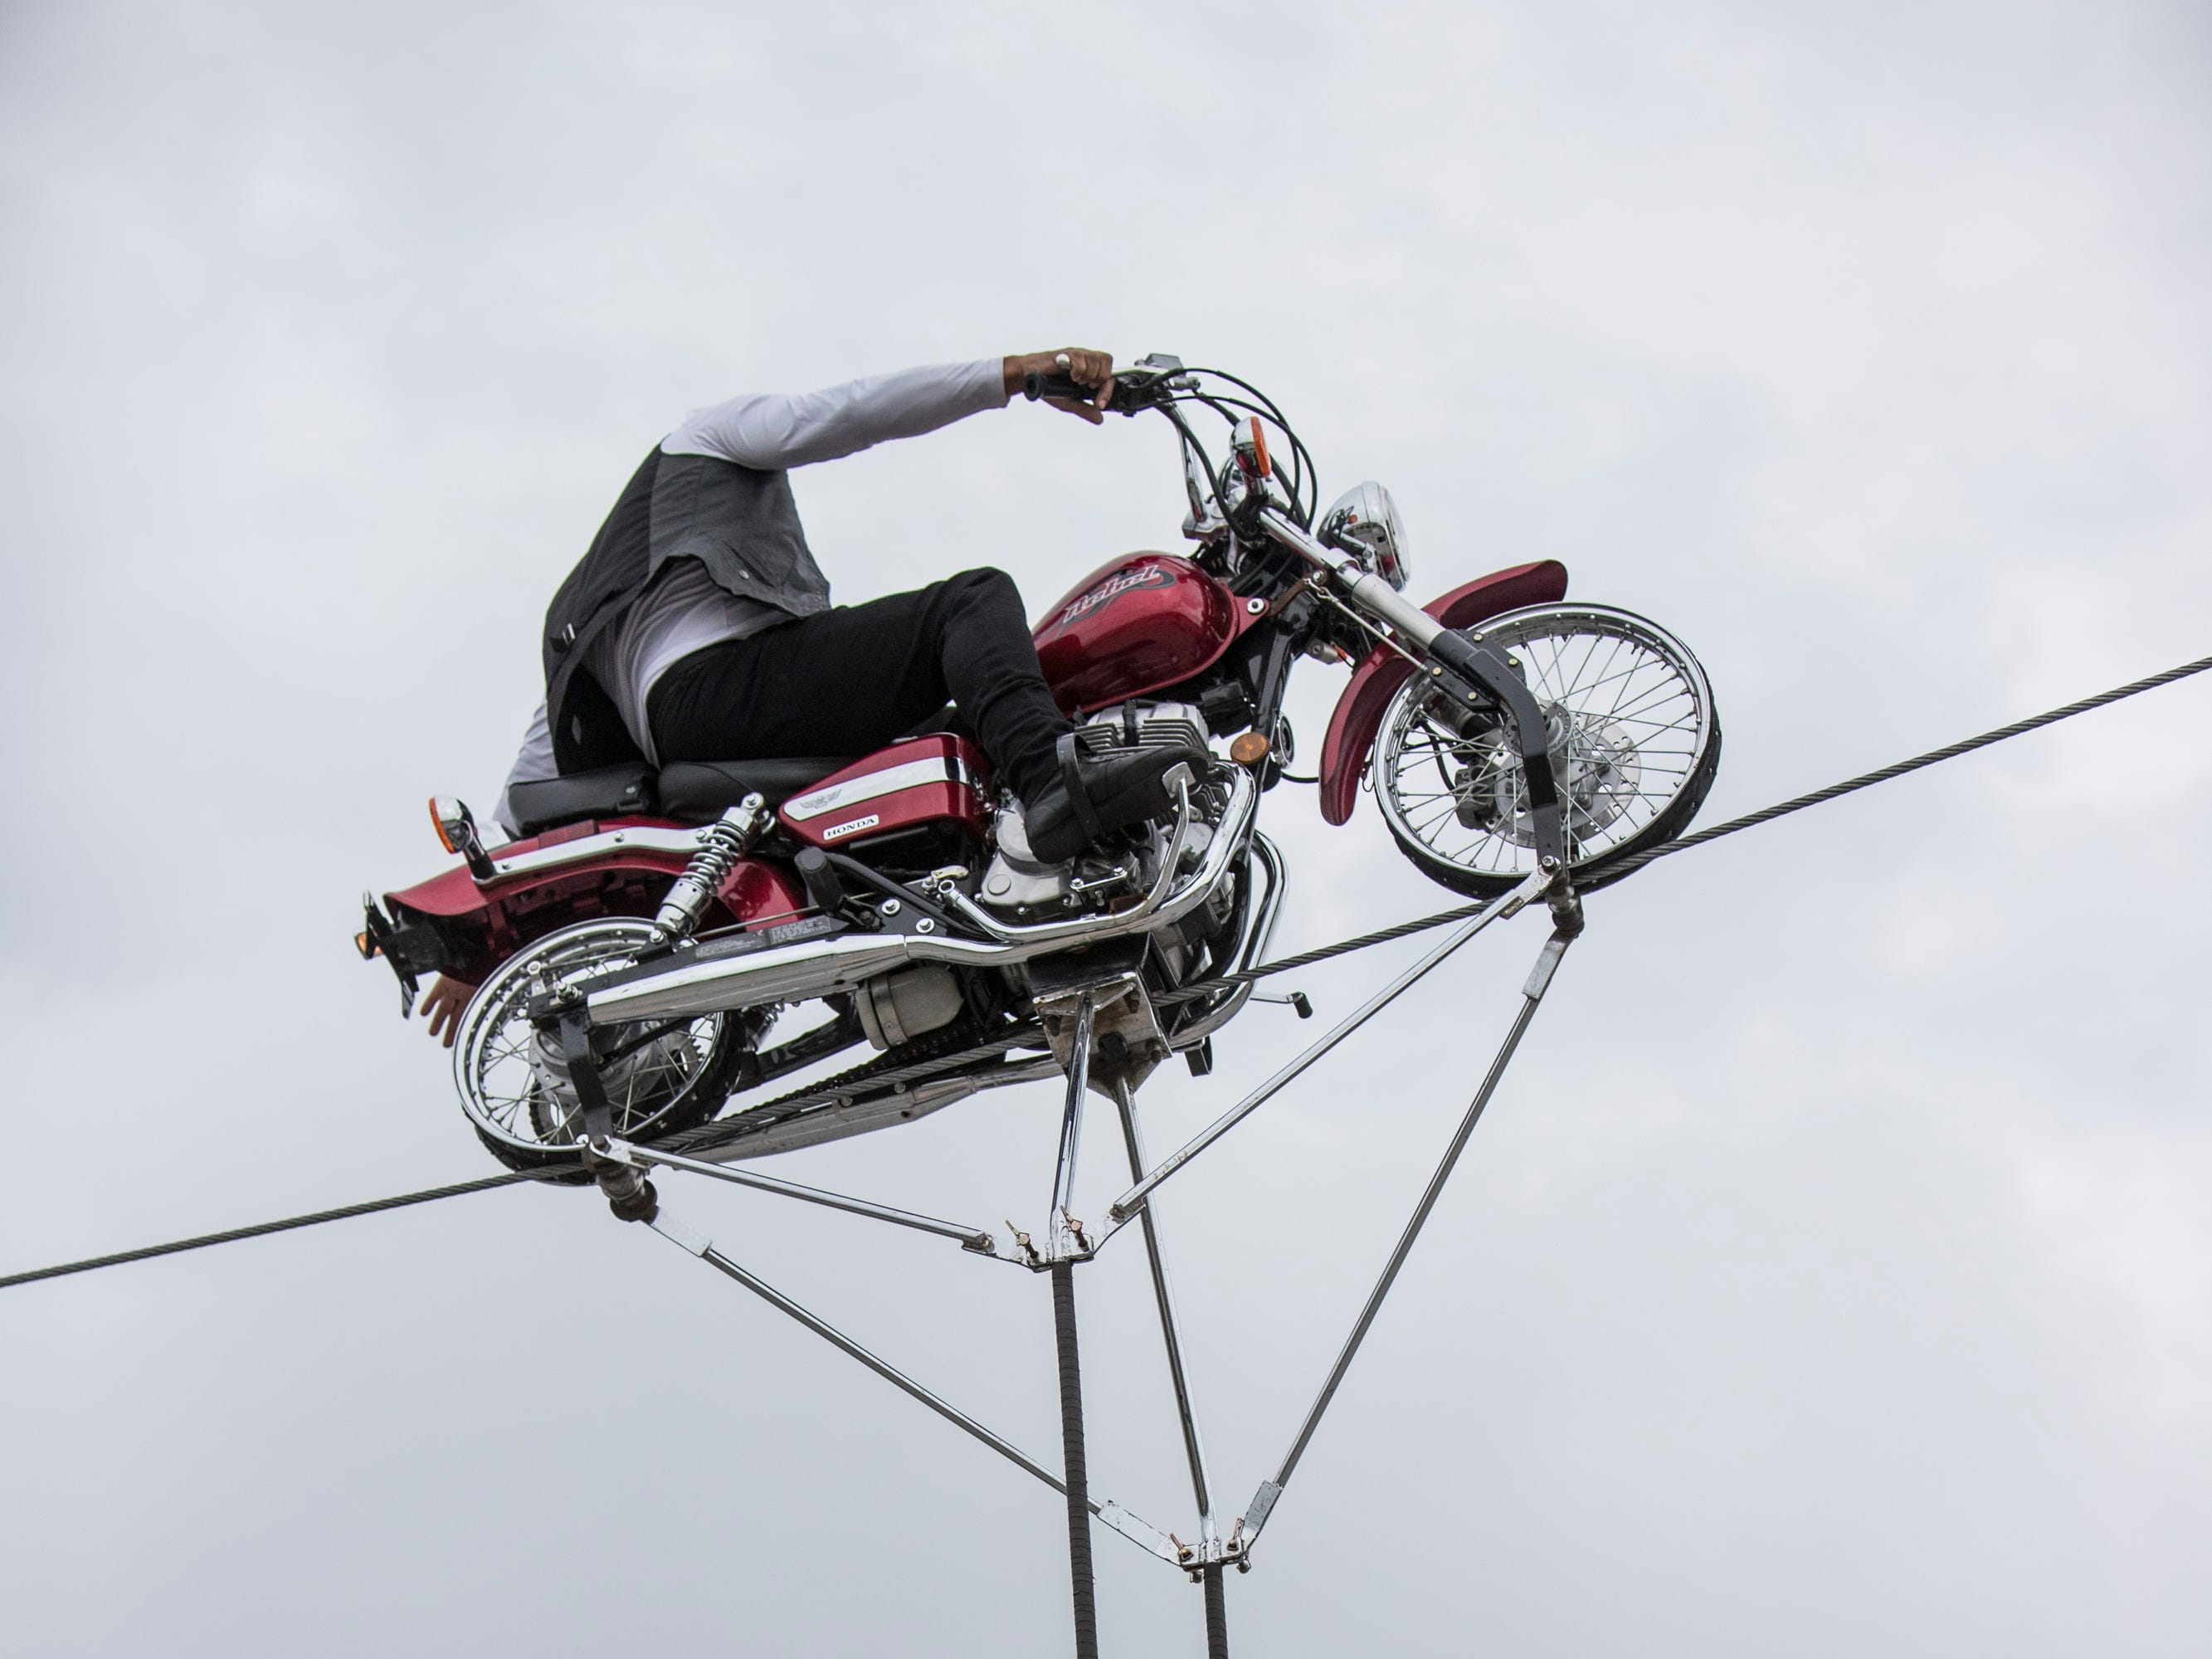 Noe Espana balanced a motorcycle on a high wire while Vivien Espana dangled from a hanging trapeze during a performance by the Motor Maniacs, at the Kentucky State Fair. Aug. 17, 2018.